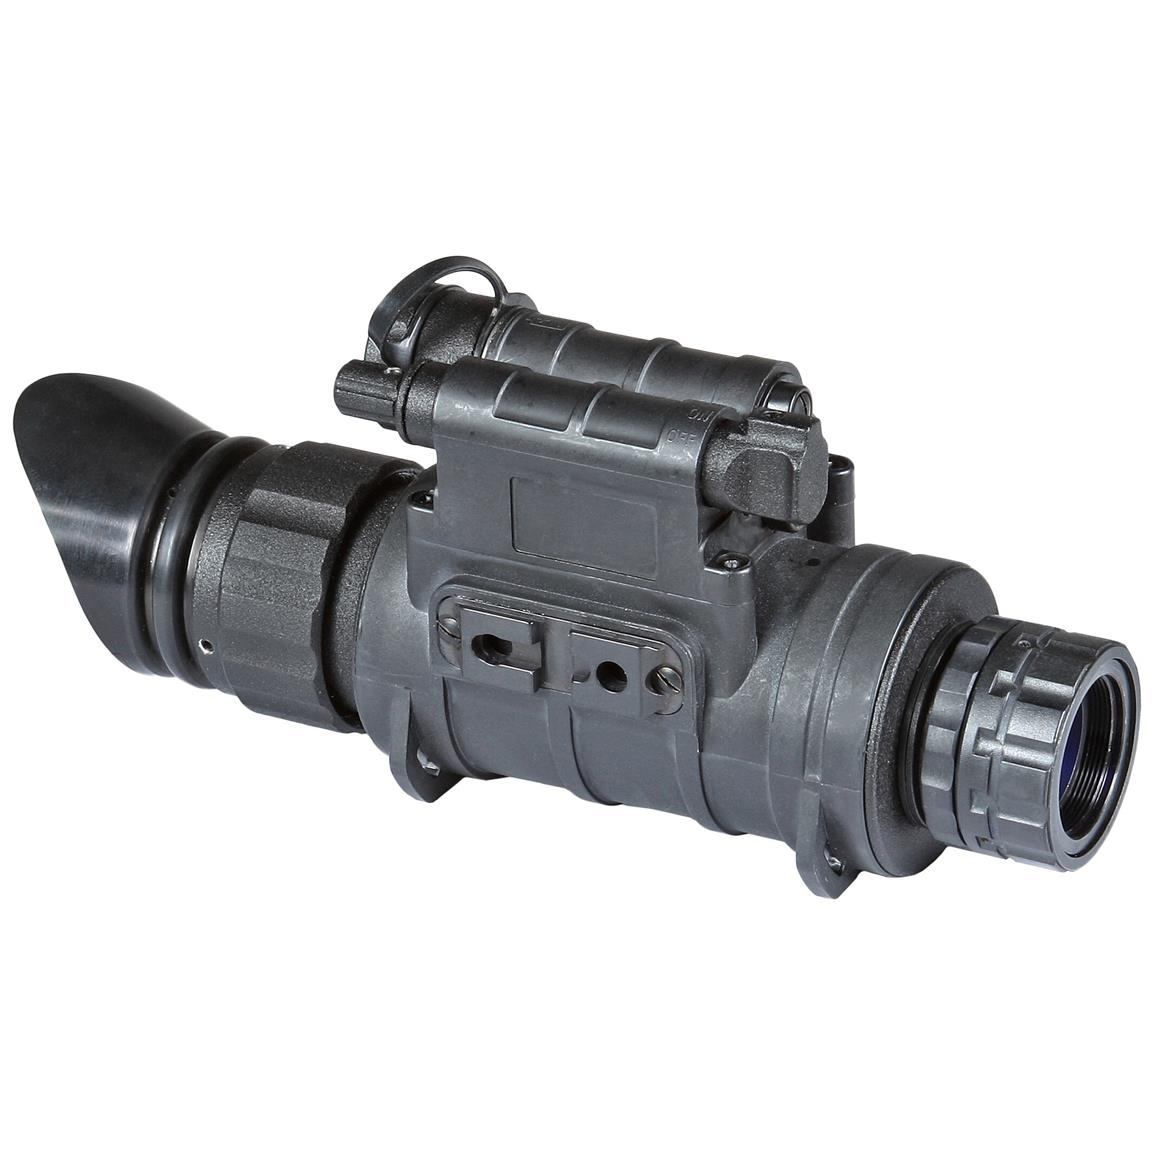 Armasight® Sirius Gen 2+ ID MG Night Vision Monocular